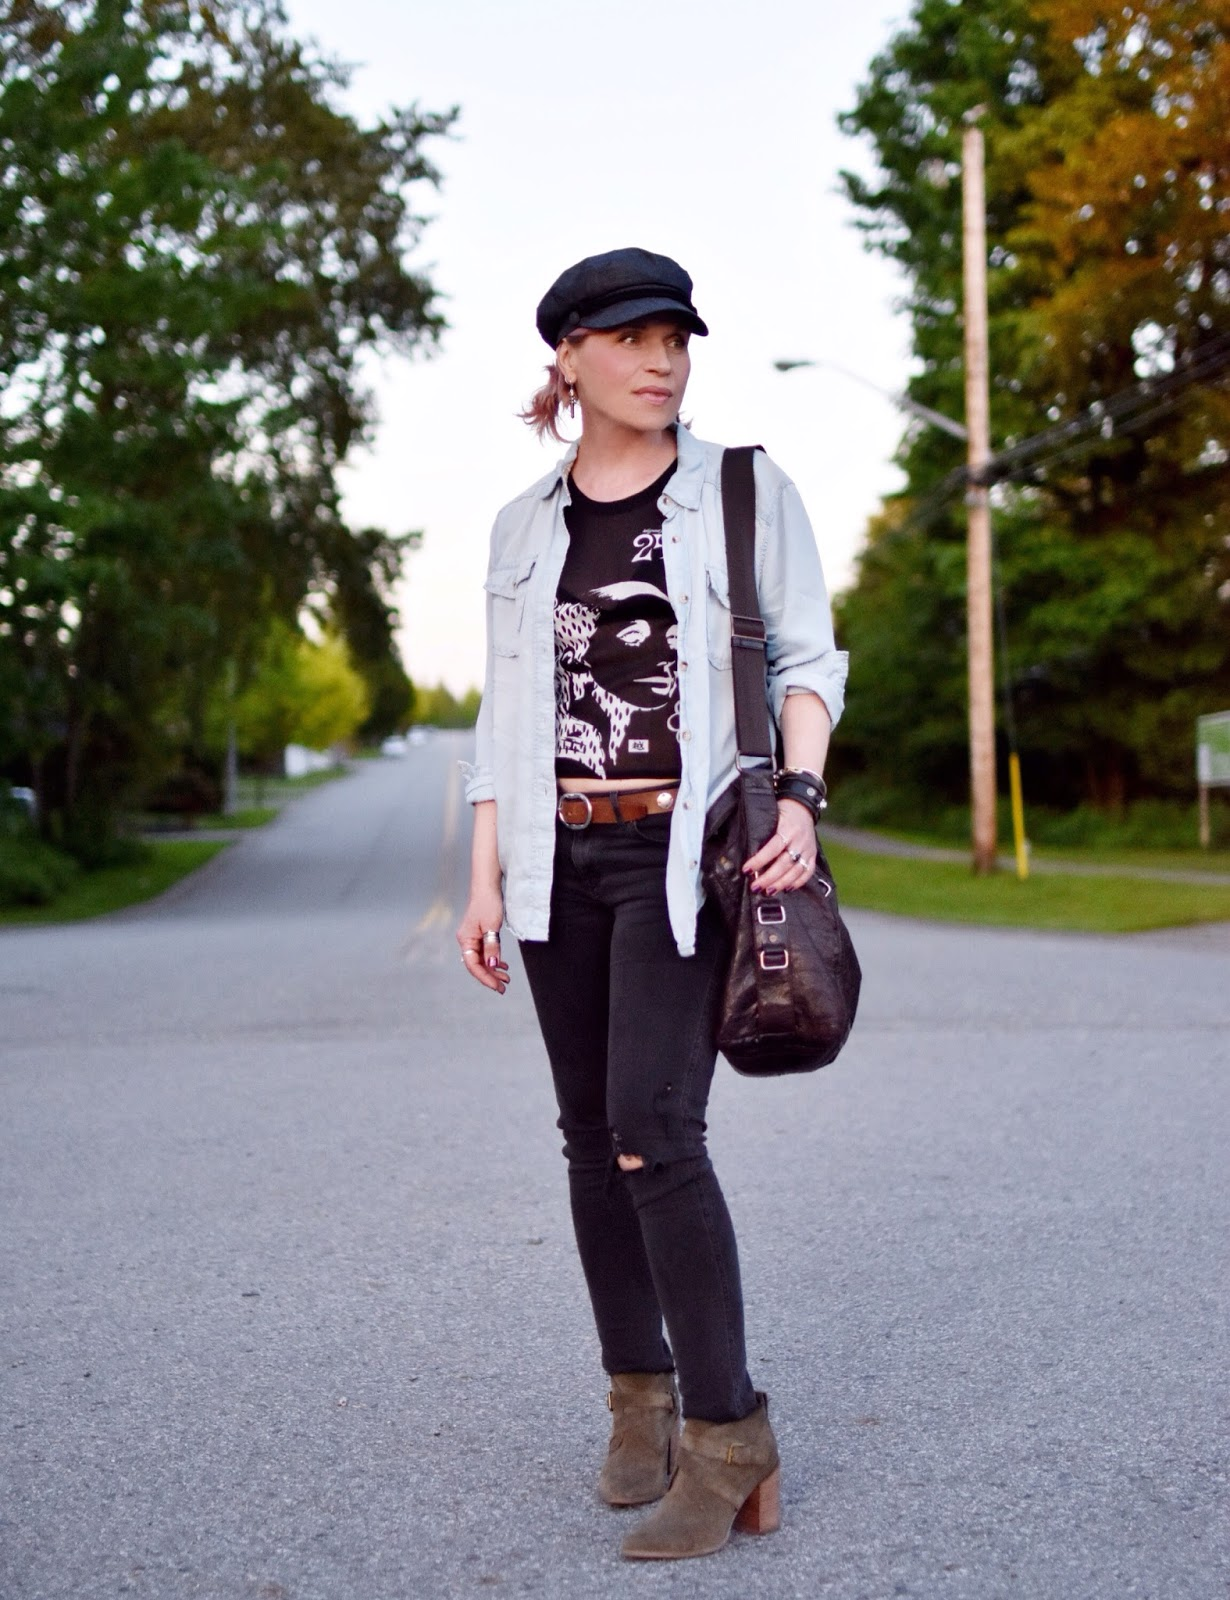 Monika Faulkner outfit inspiration - styling a graphic top and black skinnies with ankle boots, a chambray shirt, and a baker boy cap